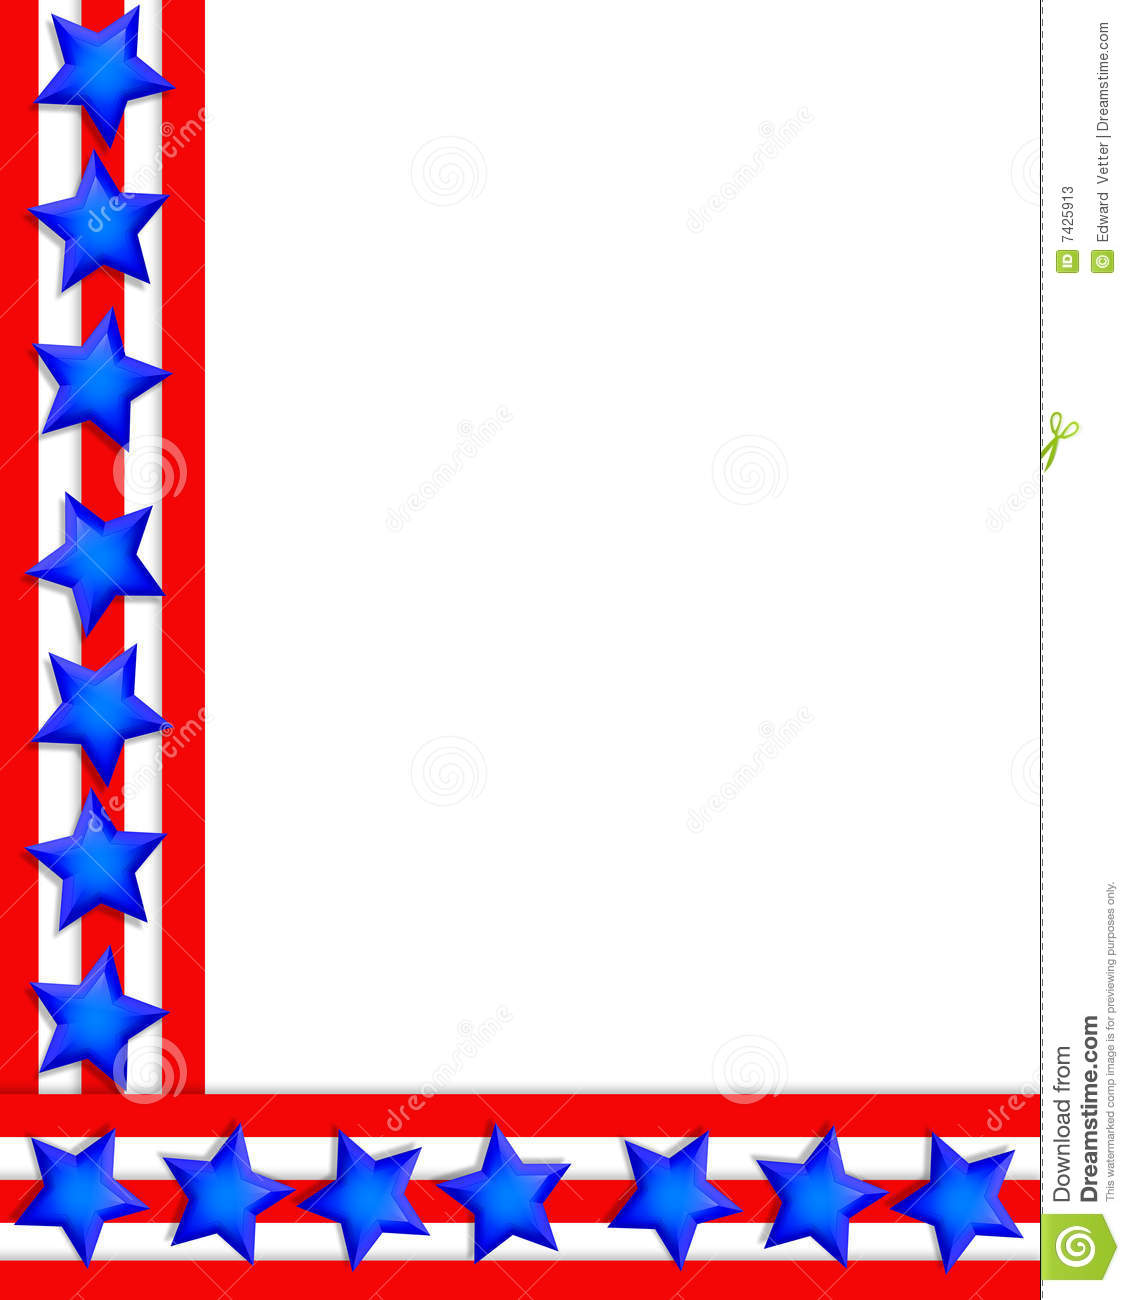 Free 4th of july clipart borders graphic transparent download 4th Of July Fireworks Border   Clipart Panda - Free Clipart Images graphic transparent download